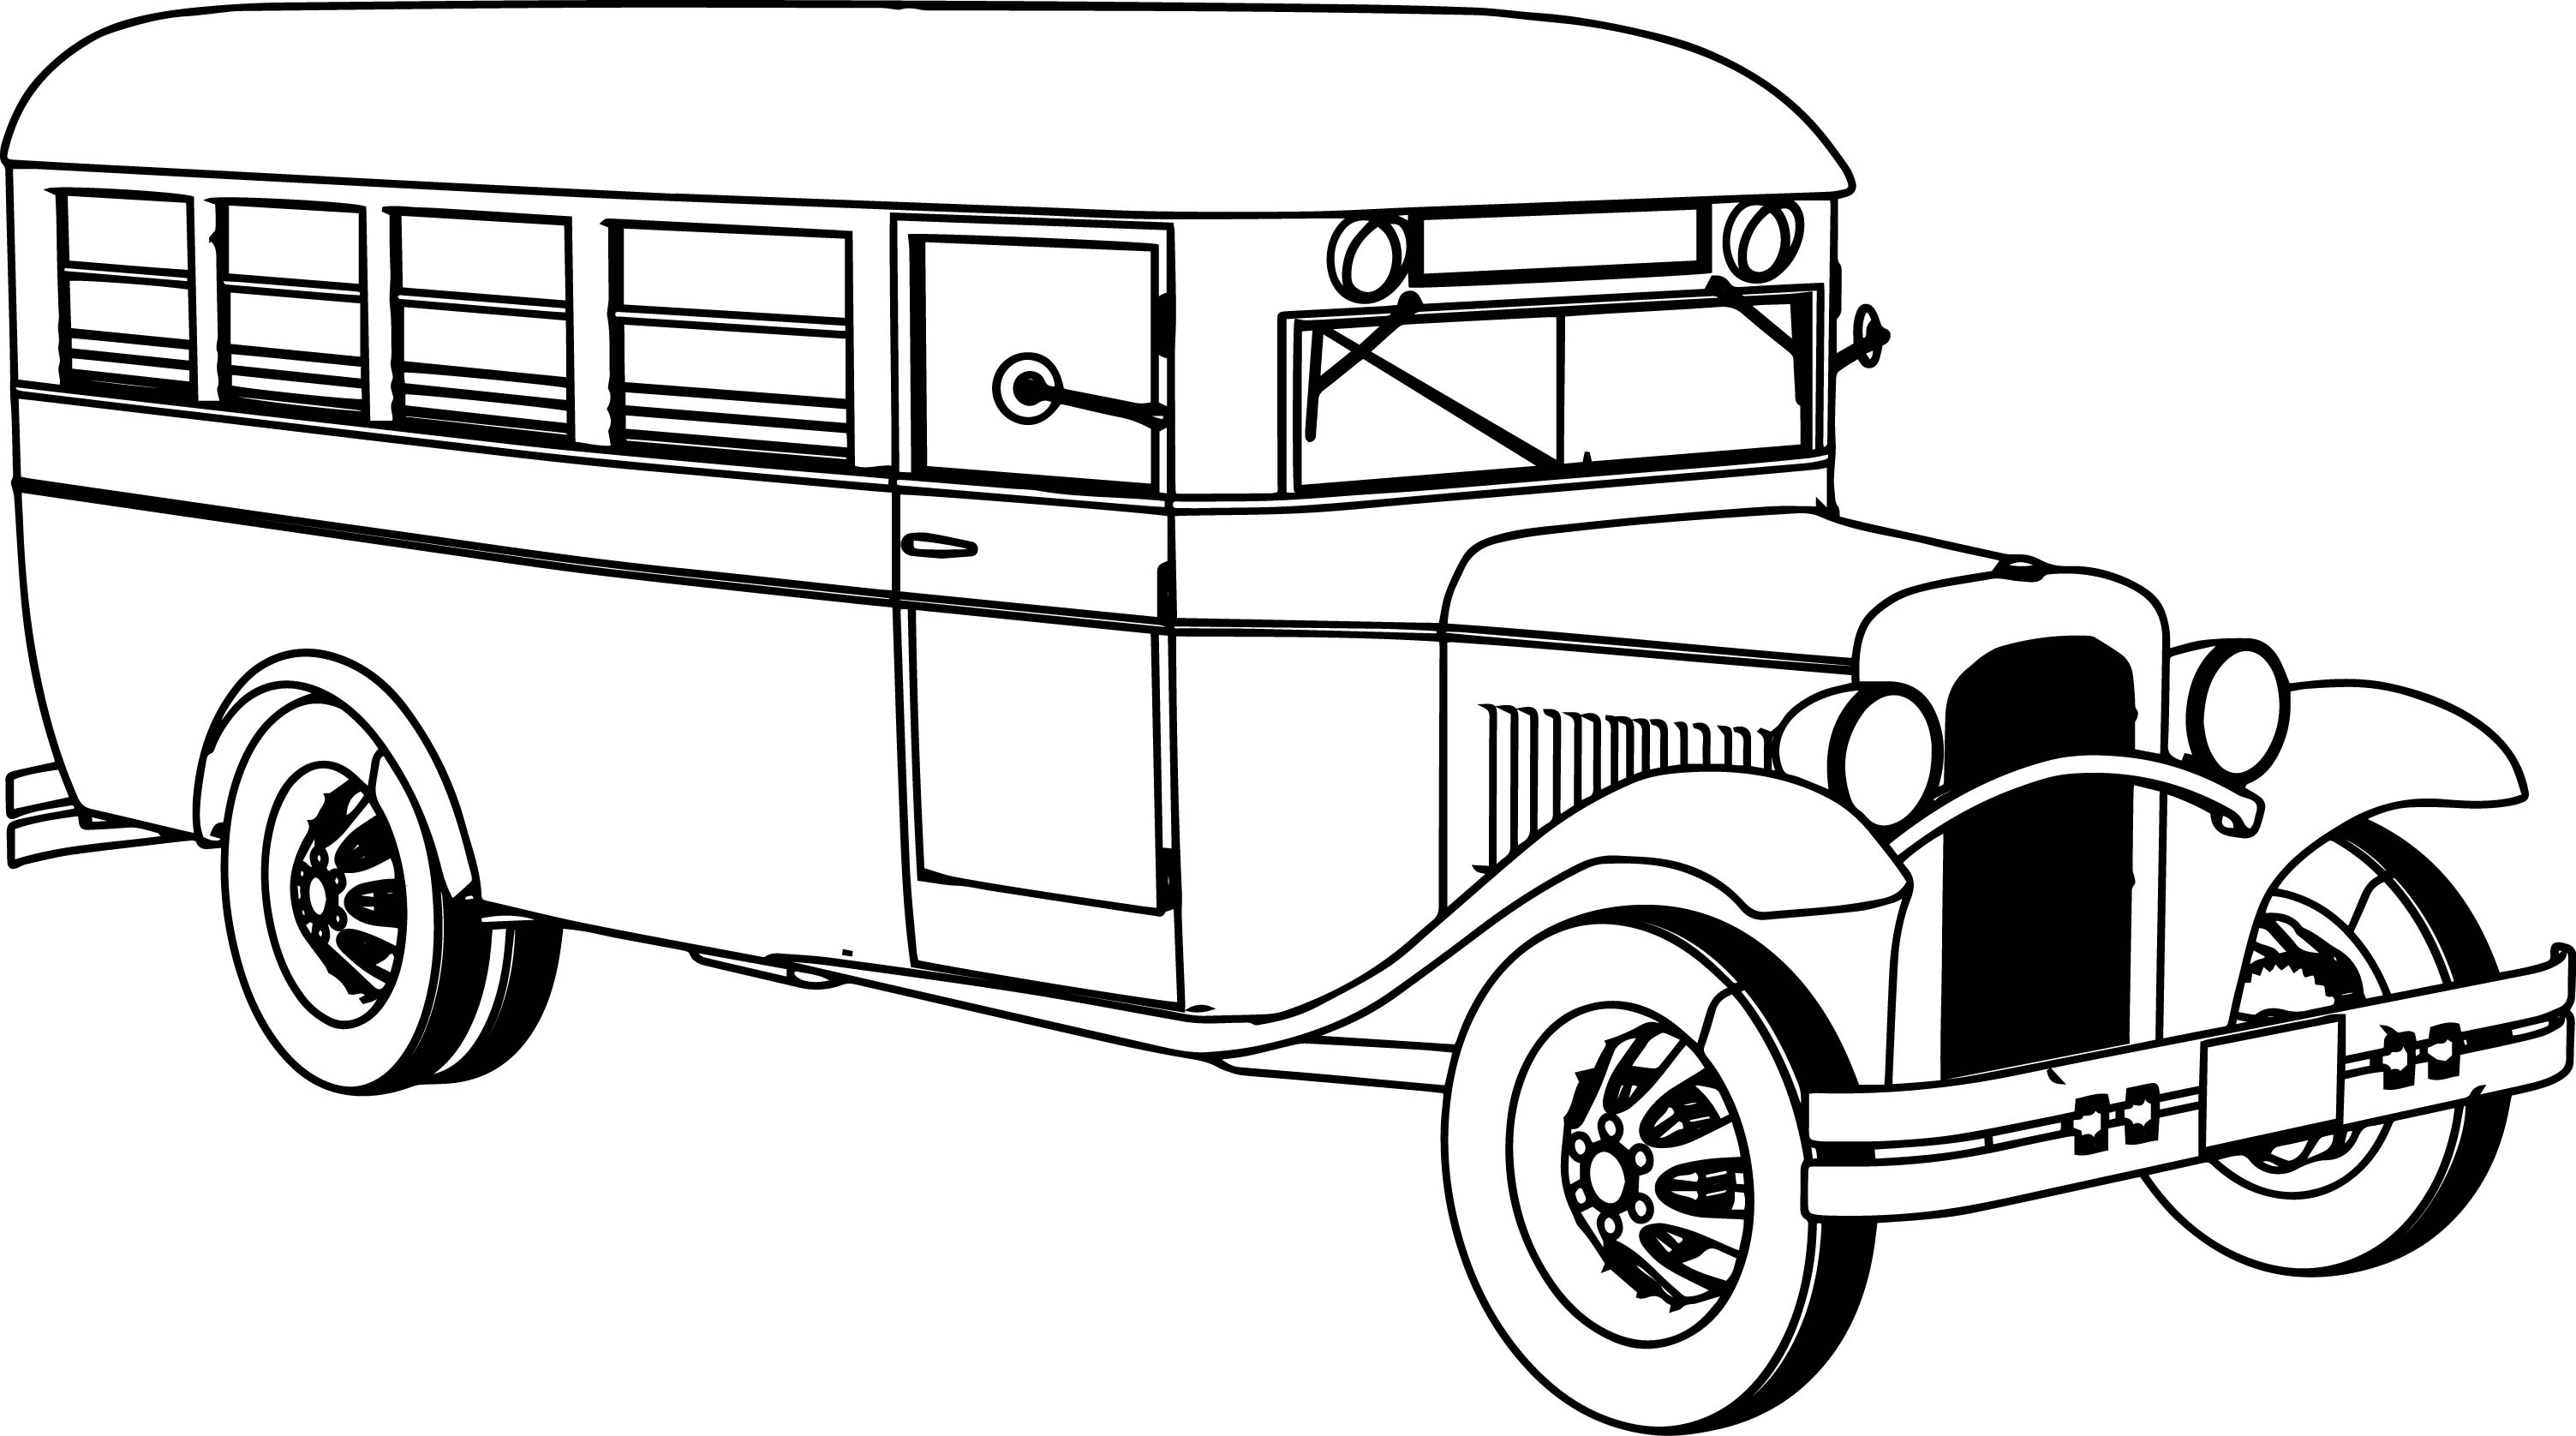 Antique cars coloring pages - Old School Bus Coloring Page